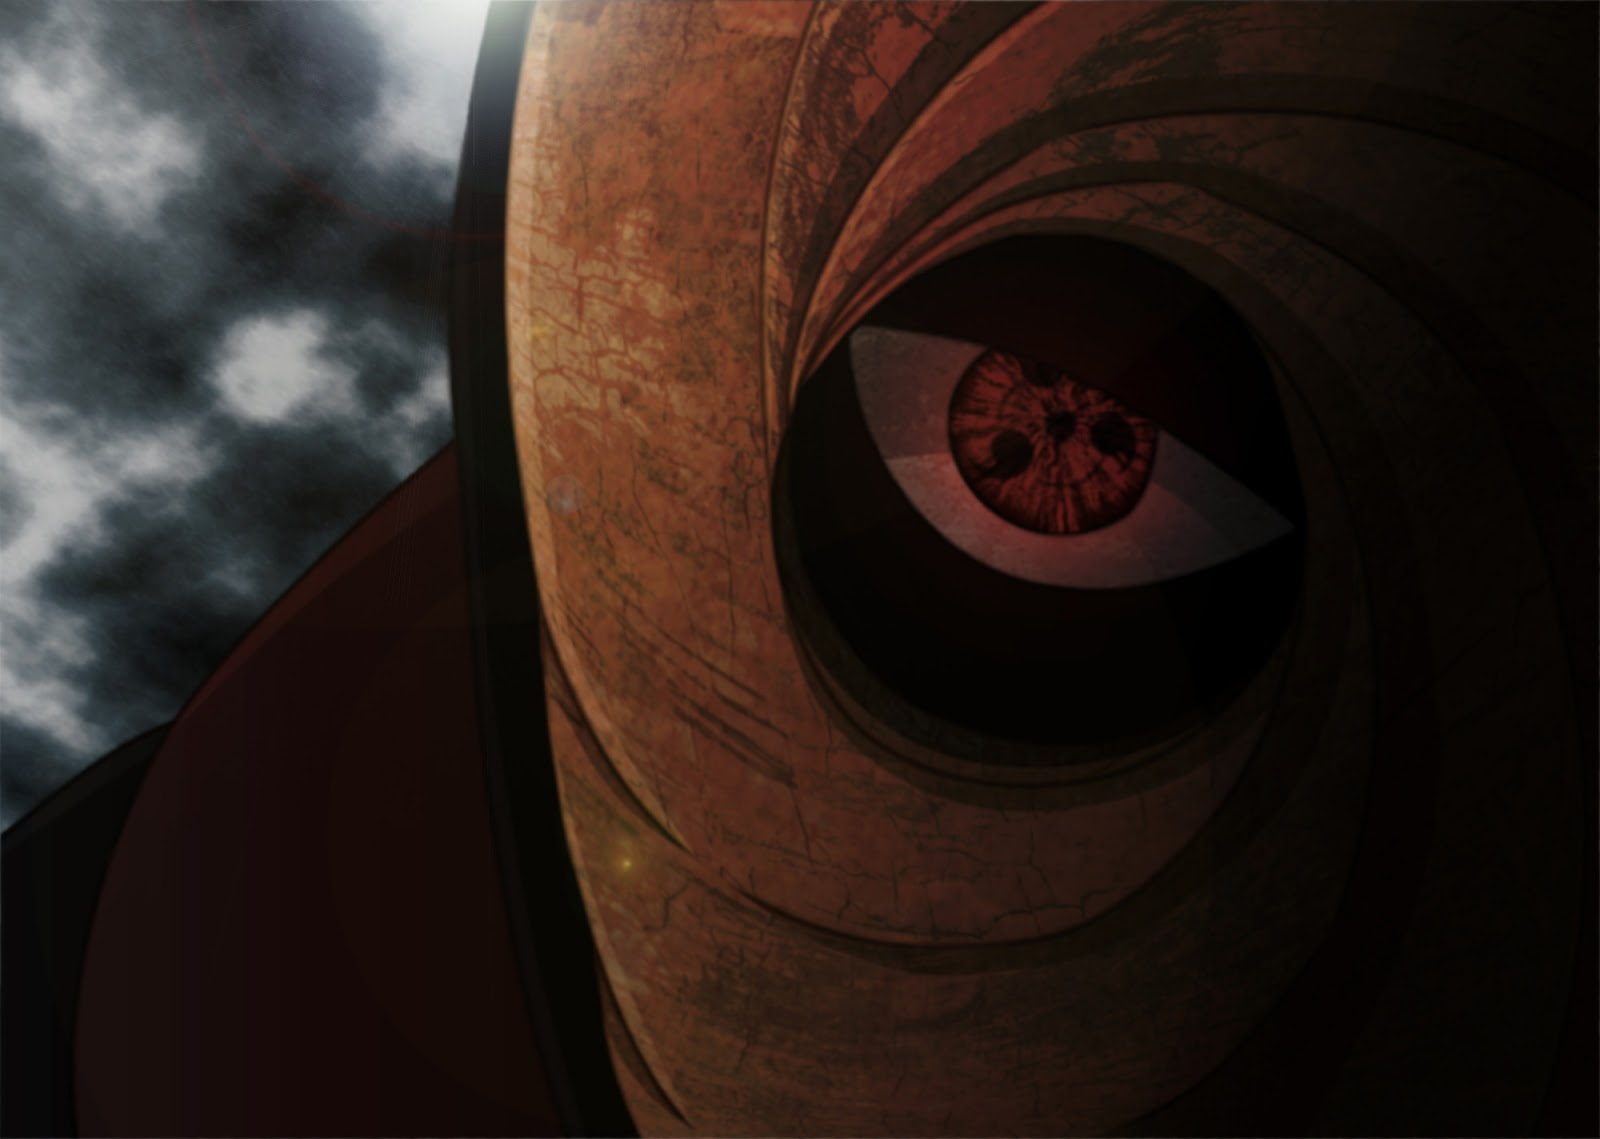 Obito Uchiha 3 Wallpapers Your daily Anime Wallpaper and Fan Art 1600x1139